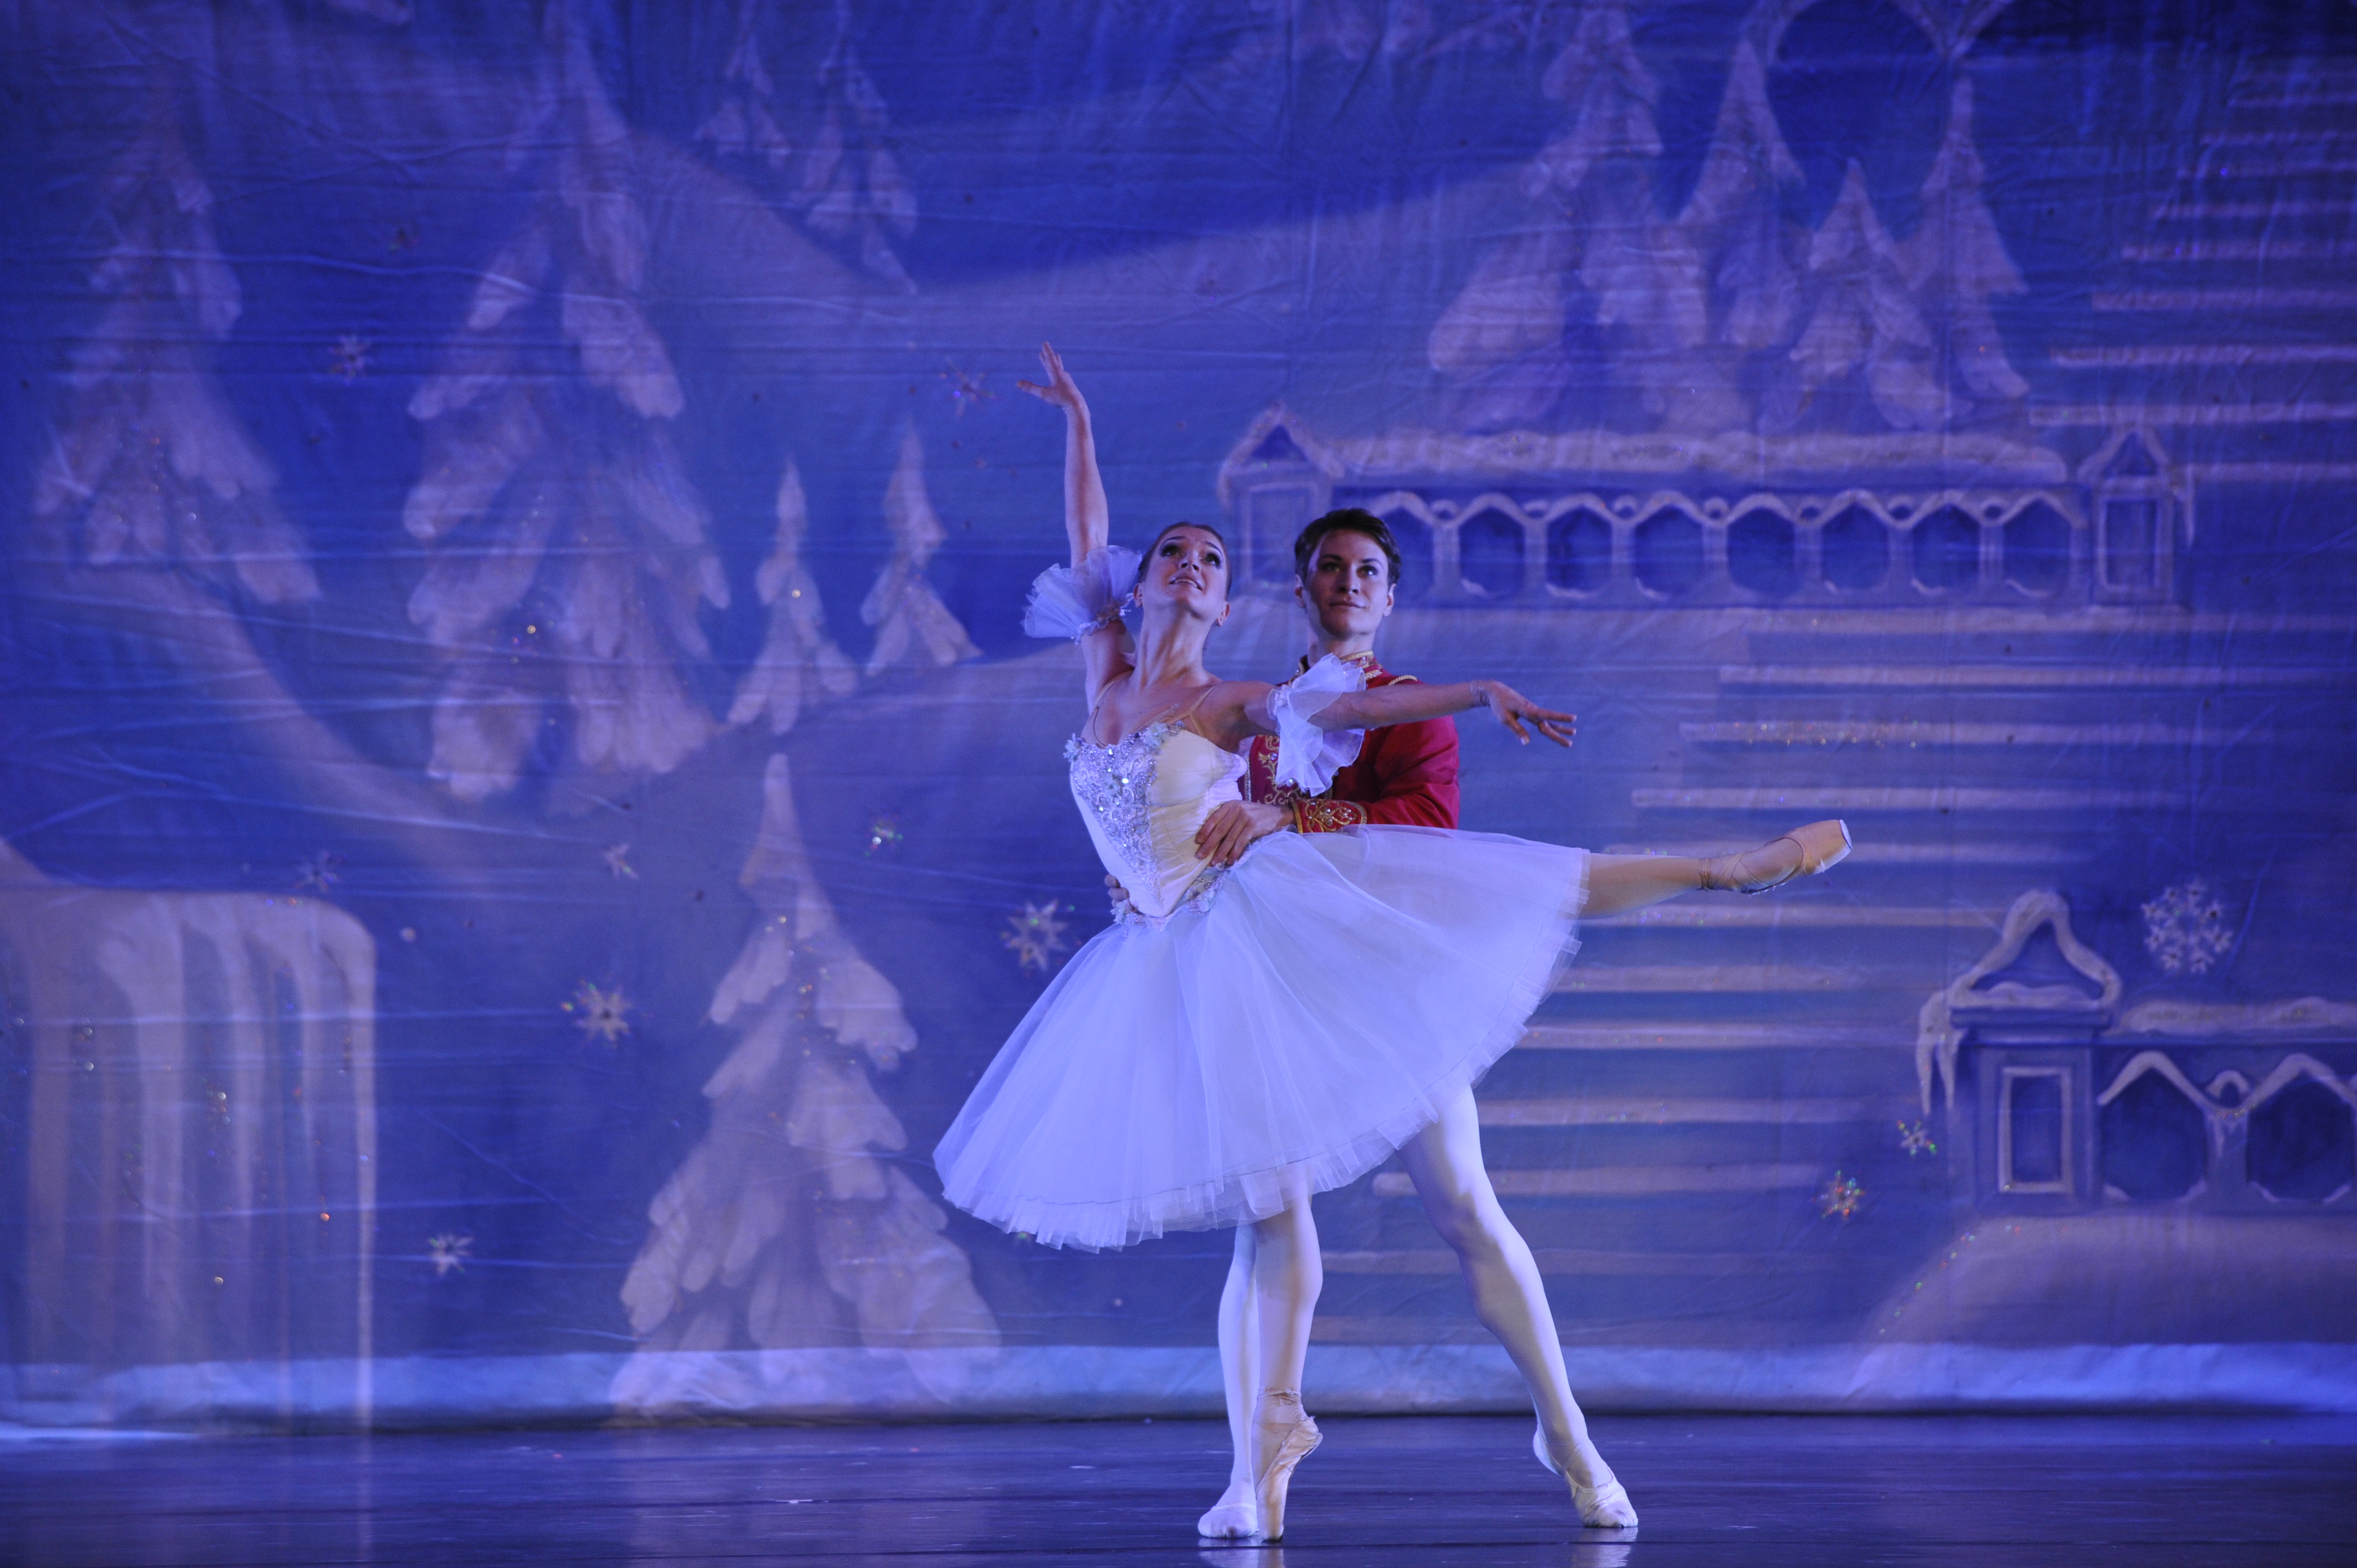 Masha in arabesque on pointe with leg extended up behind her. Her Nutcracker Prince holds her at the waist.